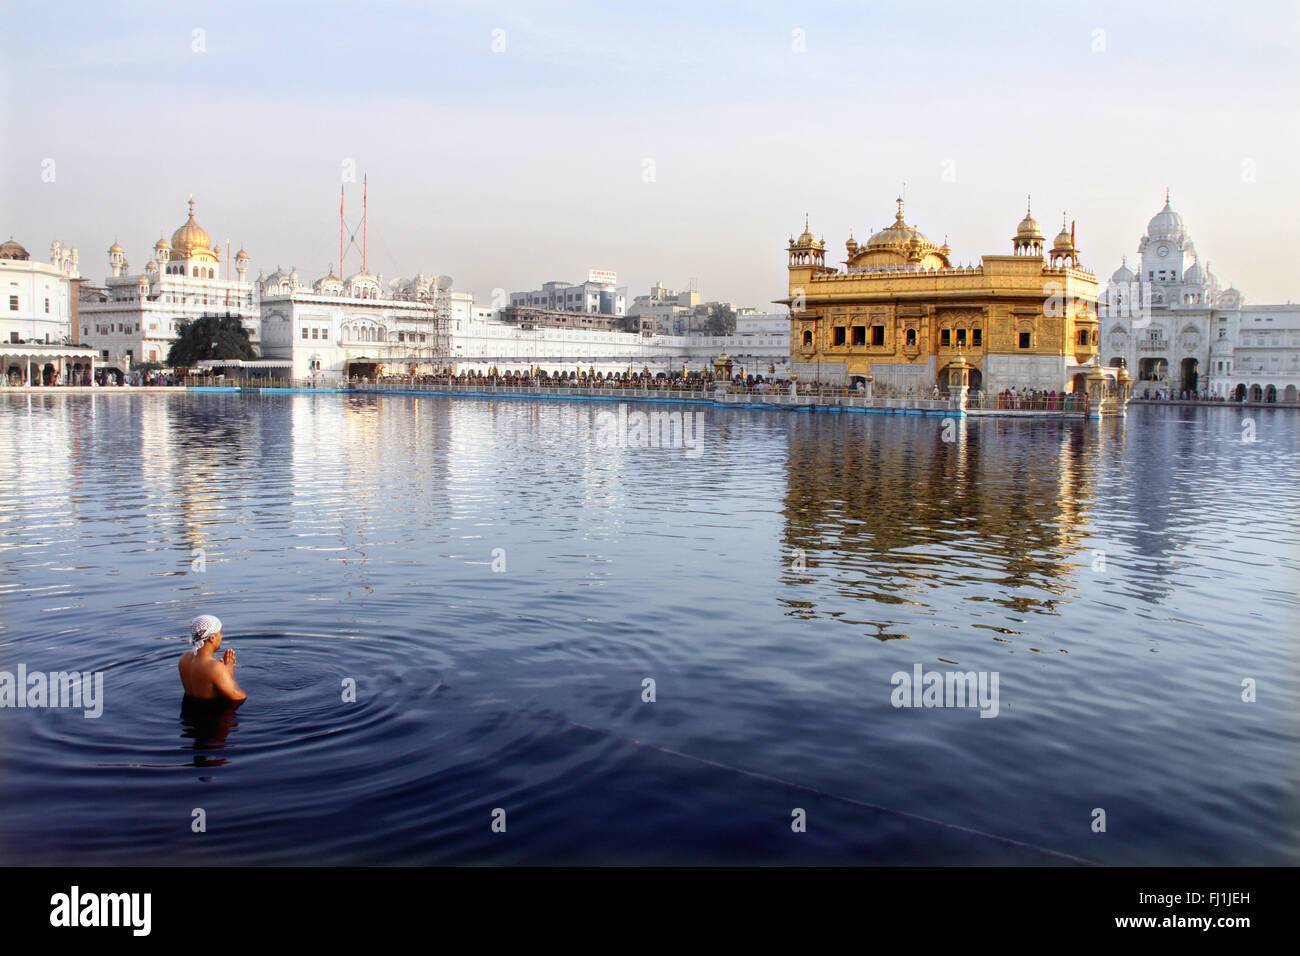 A sikh man prays in the lake around the Golden temple, Amritsar , India - Stock Image